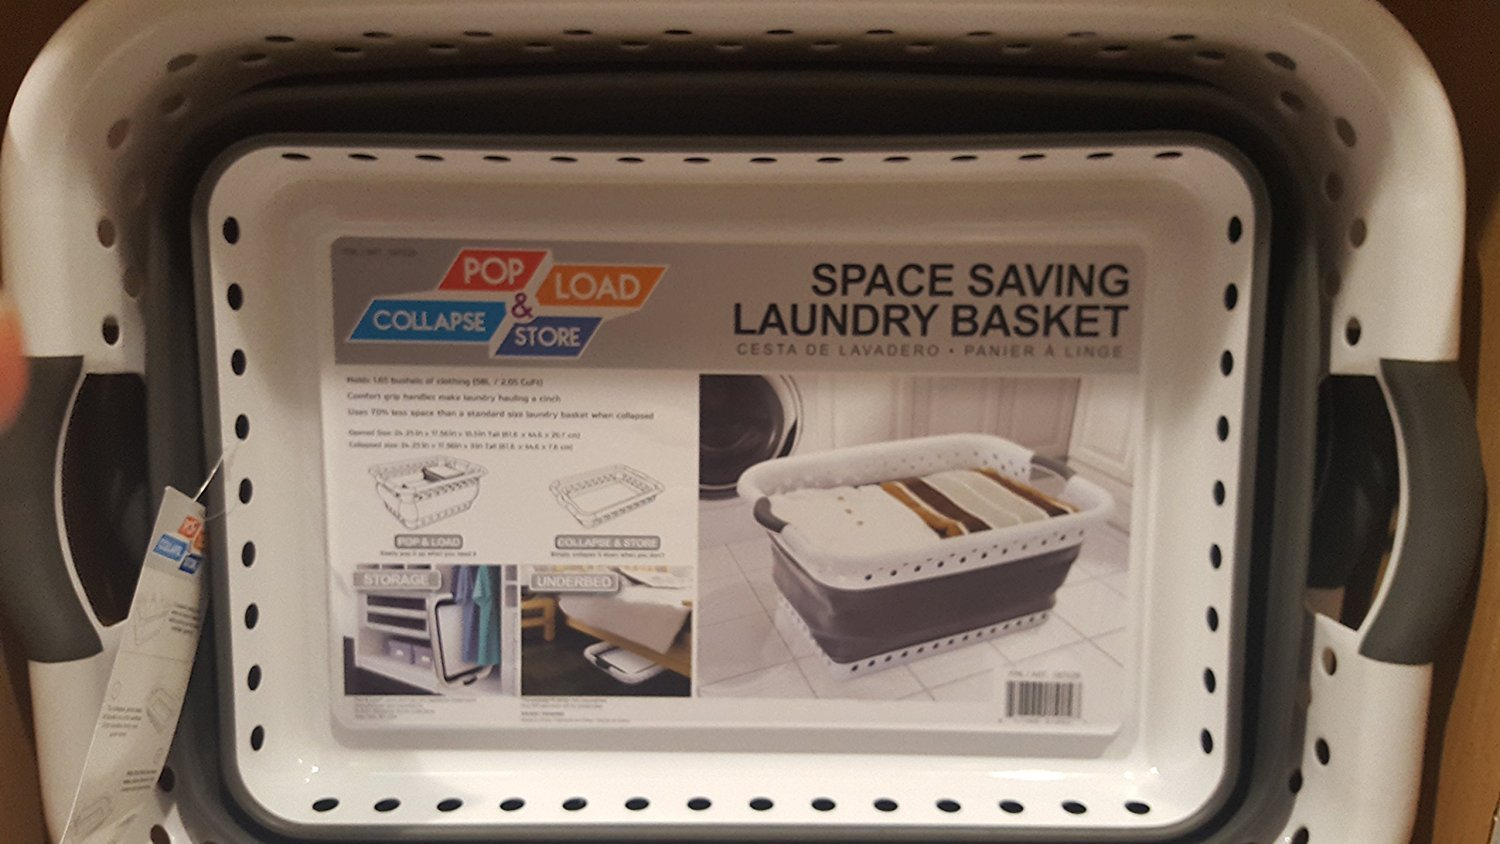 Space Saving Laundry Basket pop and load